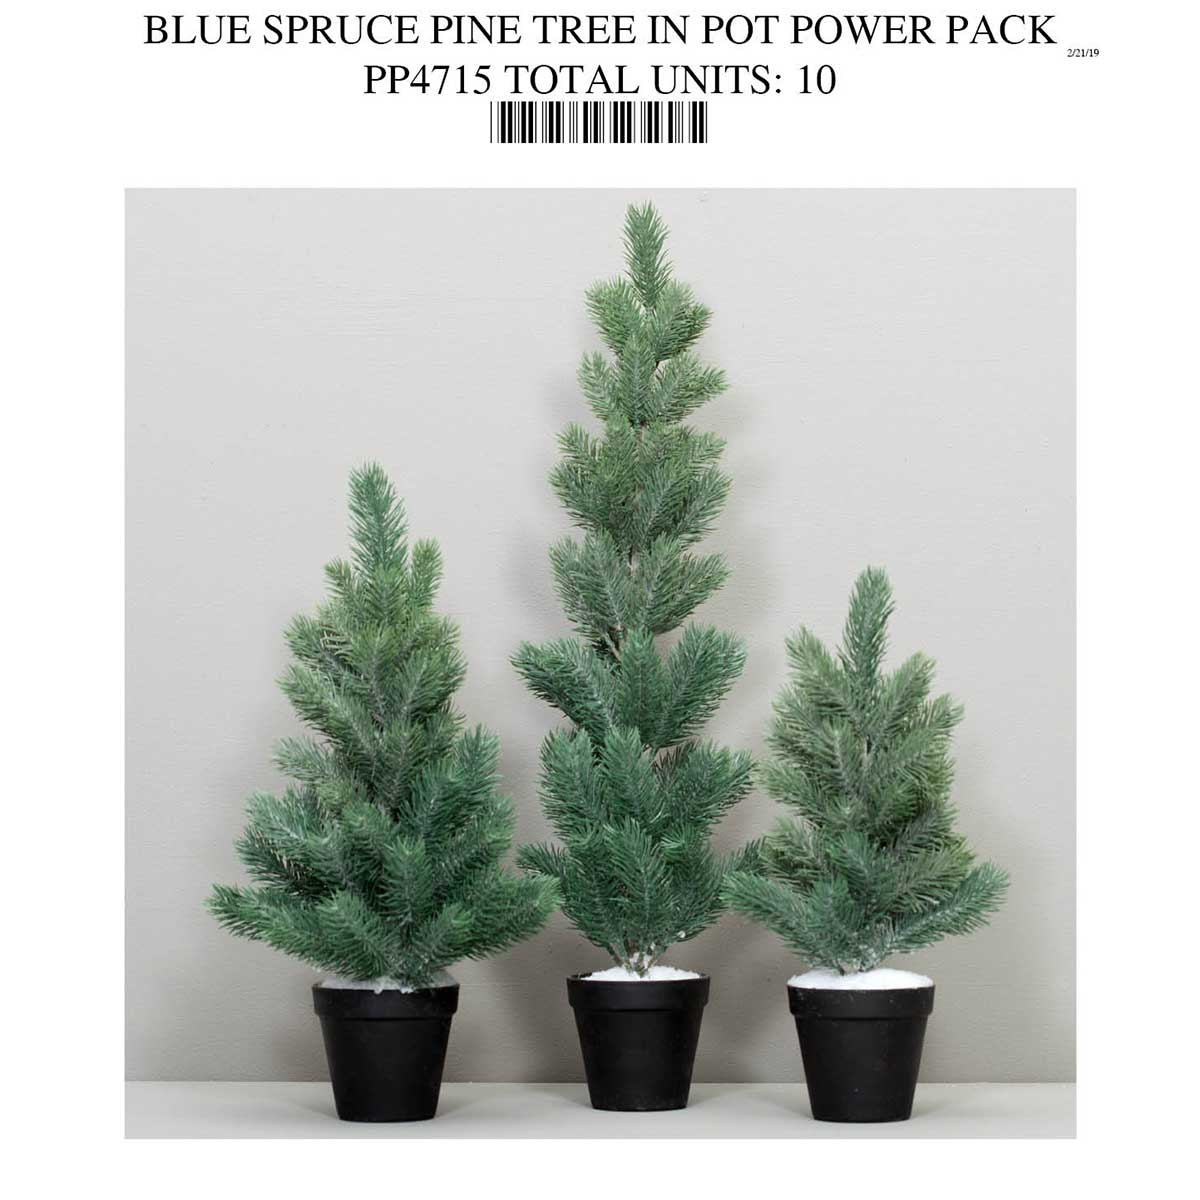 BLUE SPRUCE TREE POWER PACK PP4715